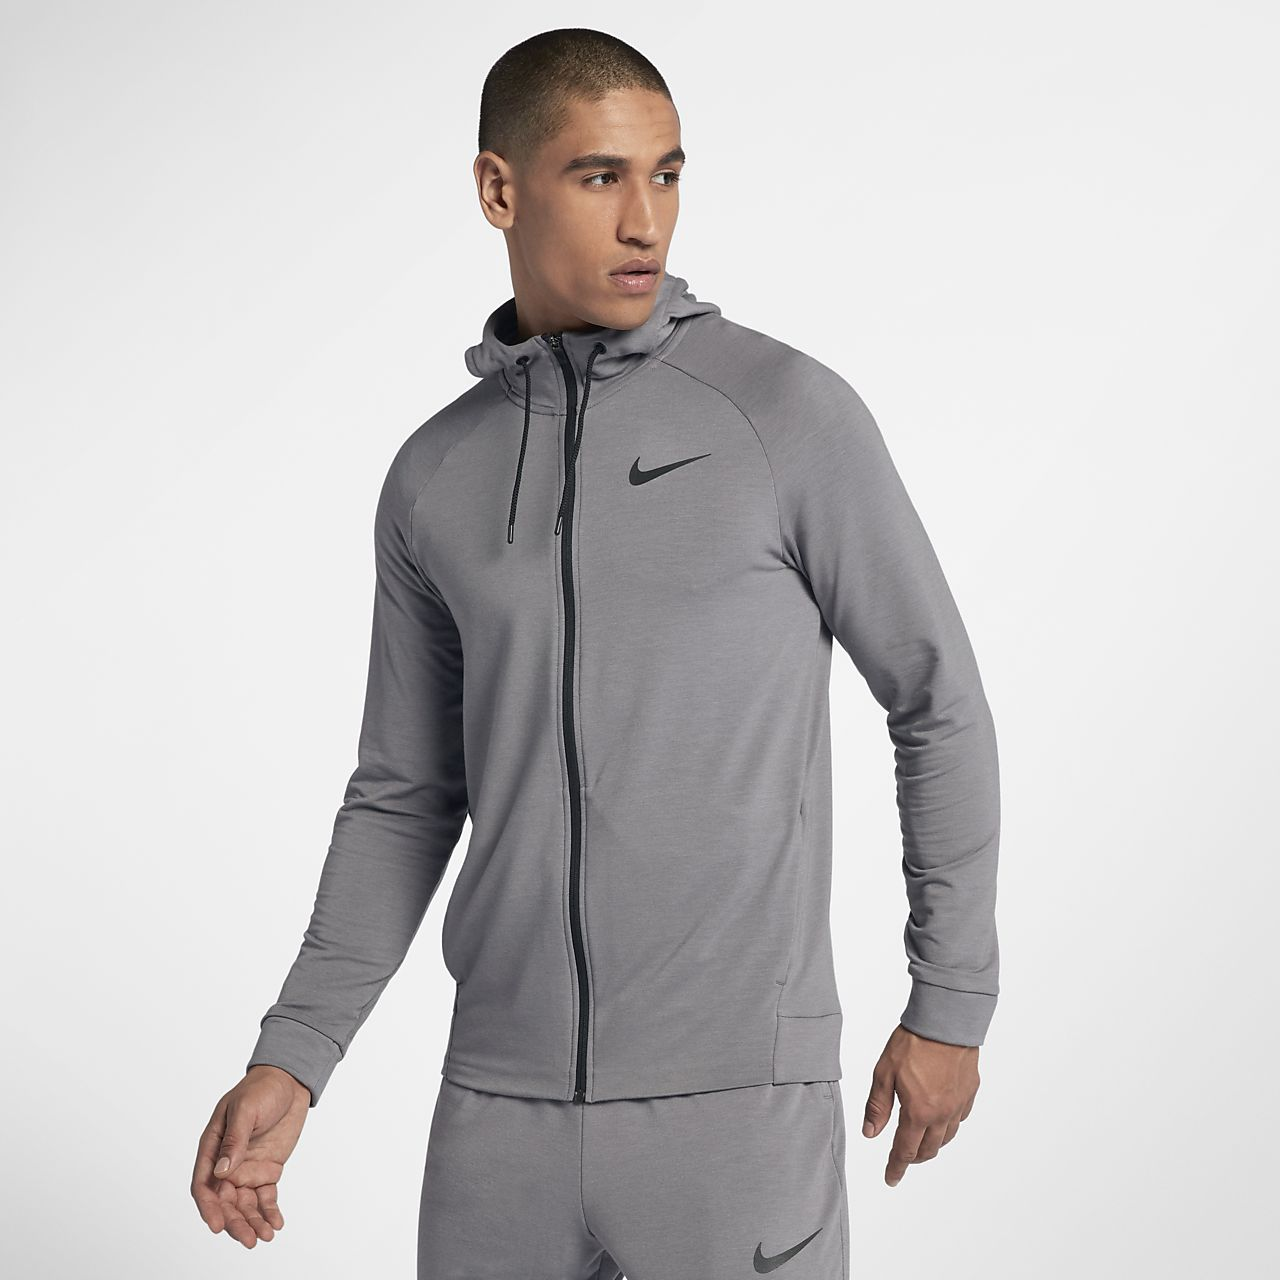 d6d3206d Nike Dri-FIT Men's Full-Zip Training Hoodie. Nike.com BE